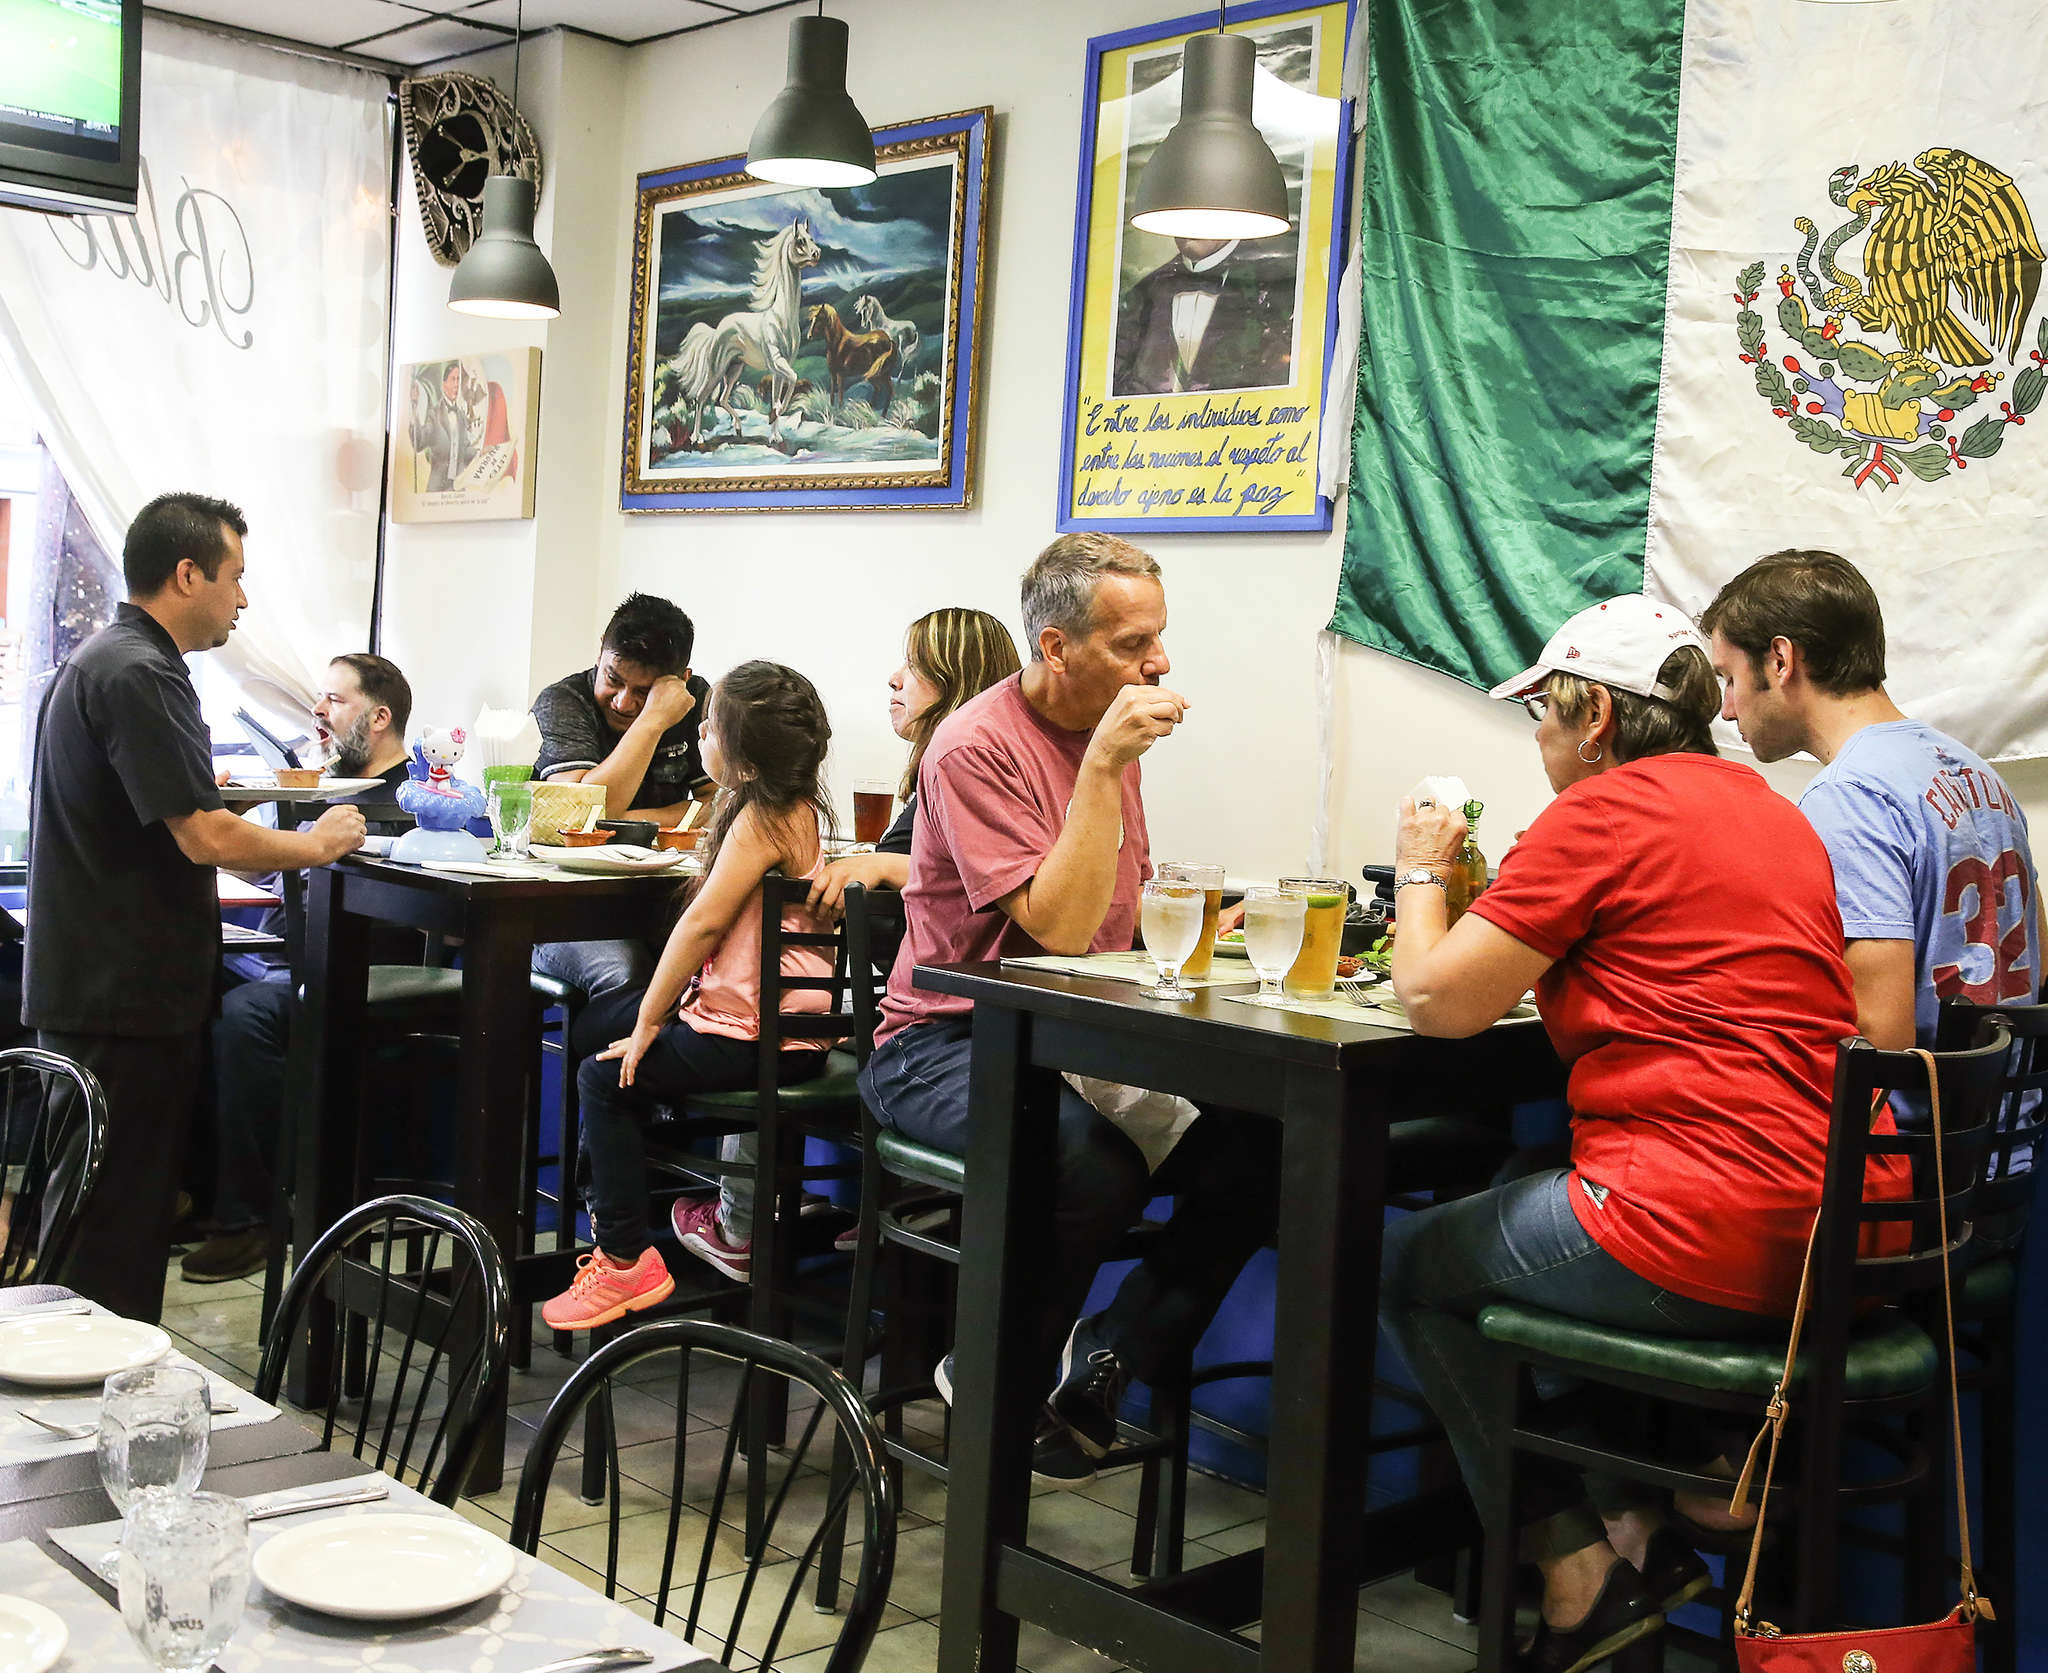 Blue Corn Mexican Restaurant & Bar in South Philadelphia features a veteran service staff and full bar. All the blue corn the Sandovals use in their restaurant helps support friends back home in the state of Puebla, where the grain is produced. In addition to Blue Corn´s dishes of authentic substance, its bar turns out deft classical tropical cocktails.